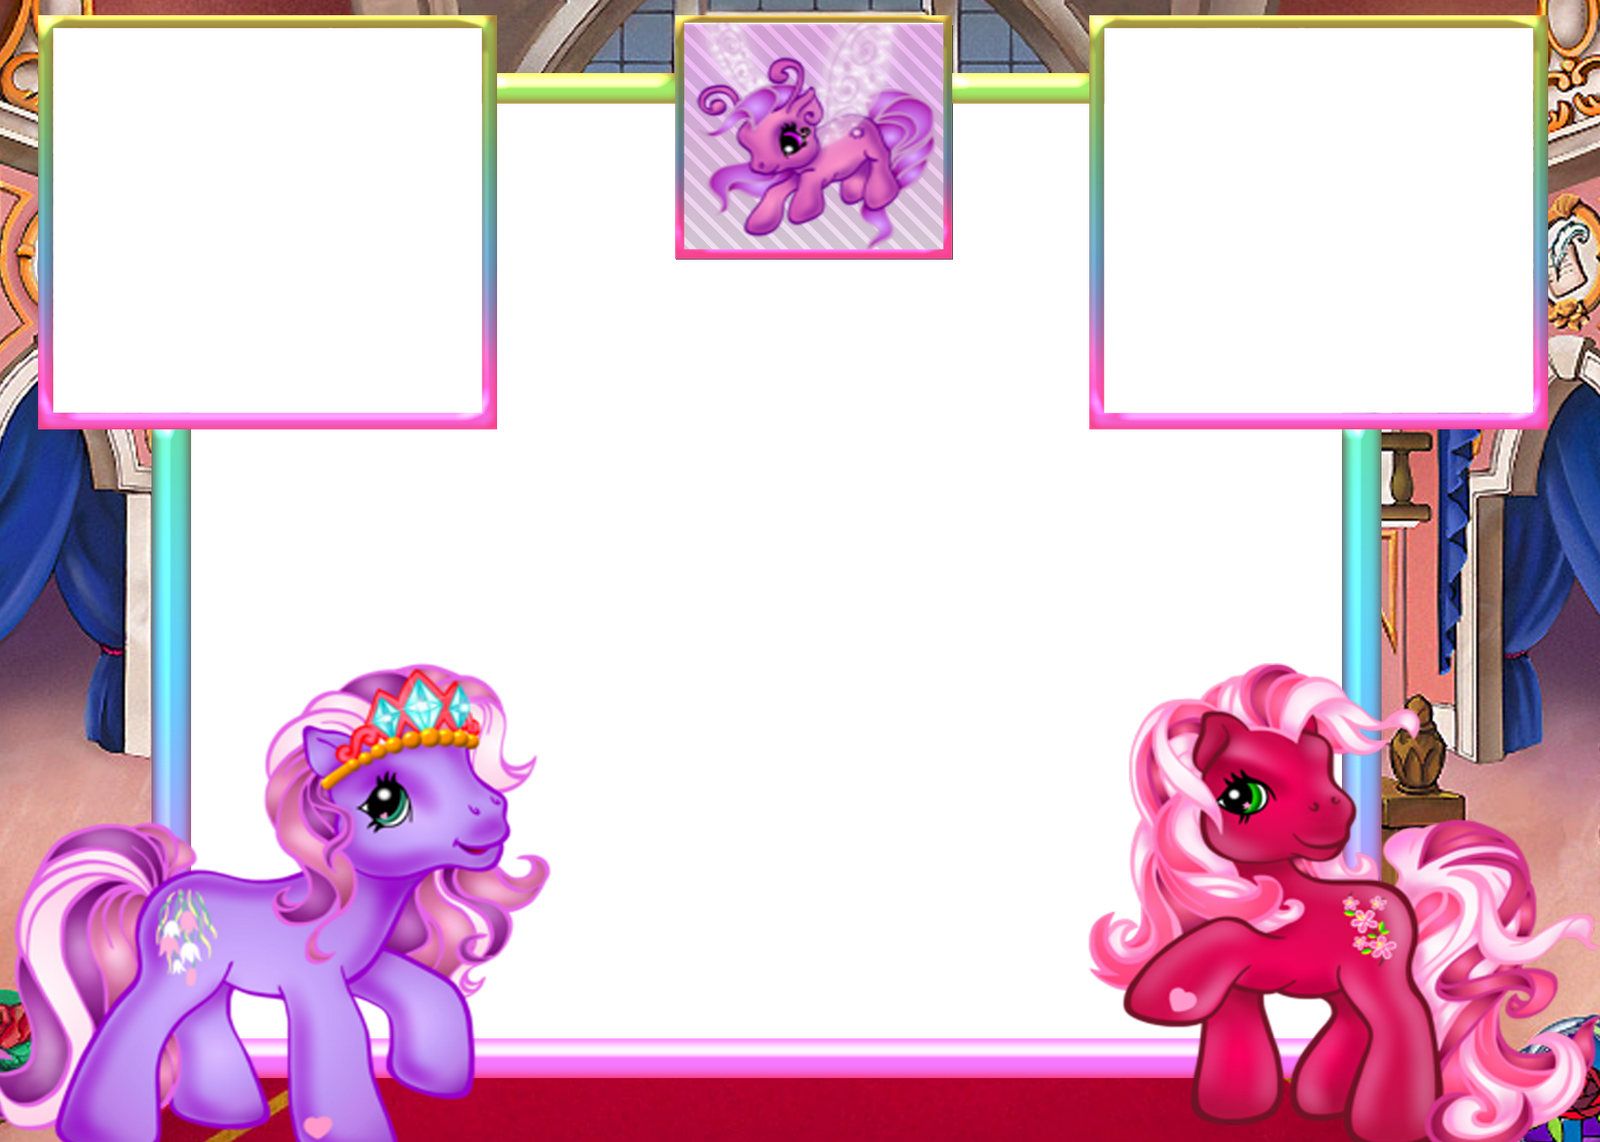 Ponies kids transparent frame gallery yopriceville high ponies kids transparent frame gallery yopriceville high quality images and transparent png free clipart frames pinterest pony high quality jeuxipadfo Gallery